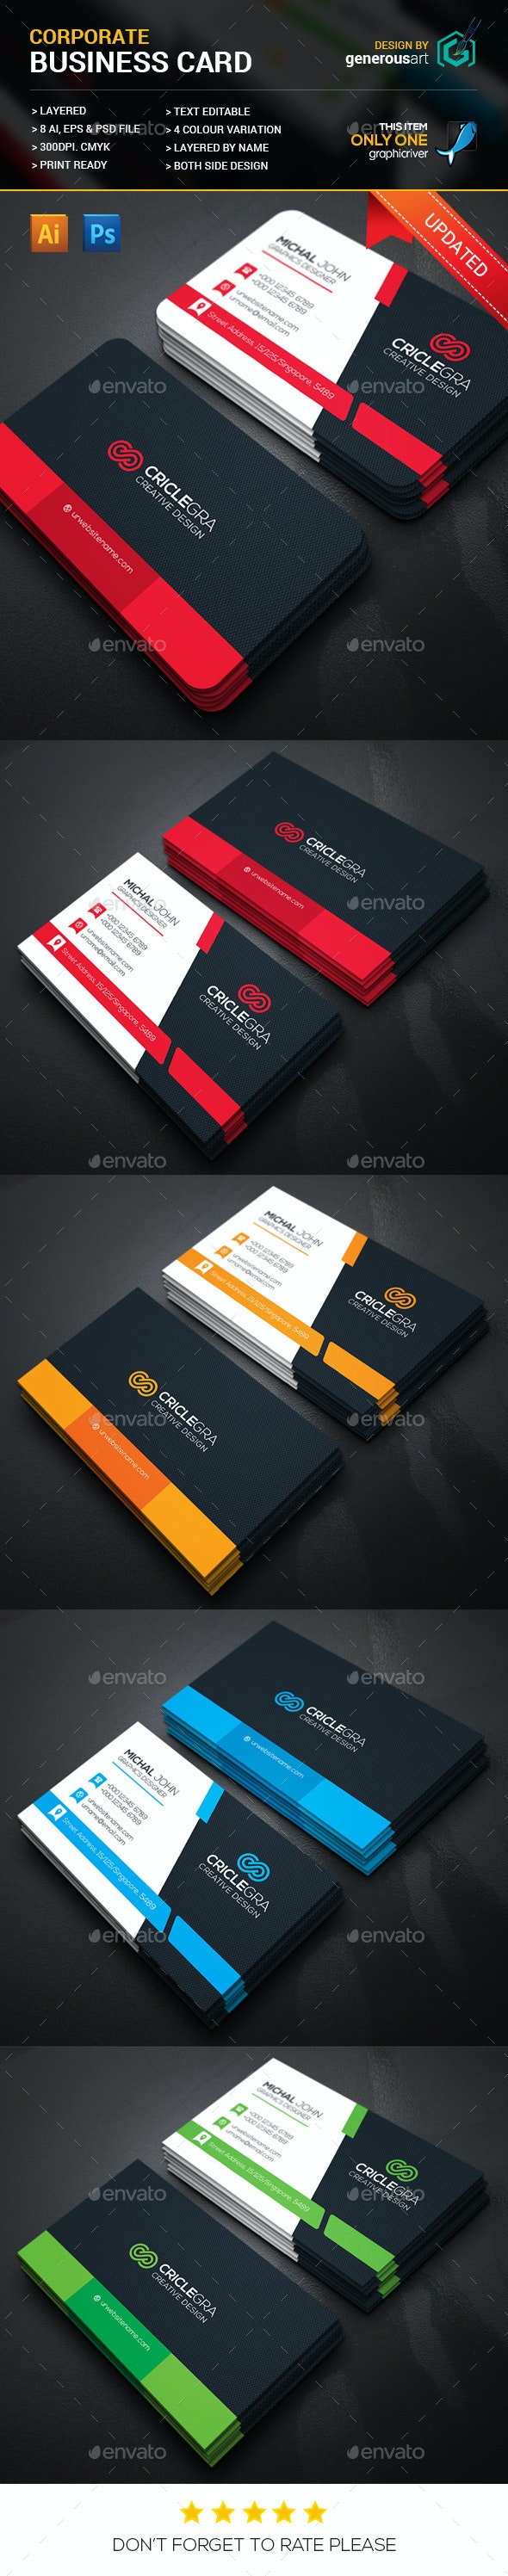 Criclegra Corporate Business Cards - Corporate Business Cards